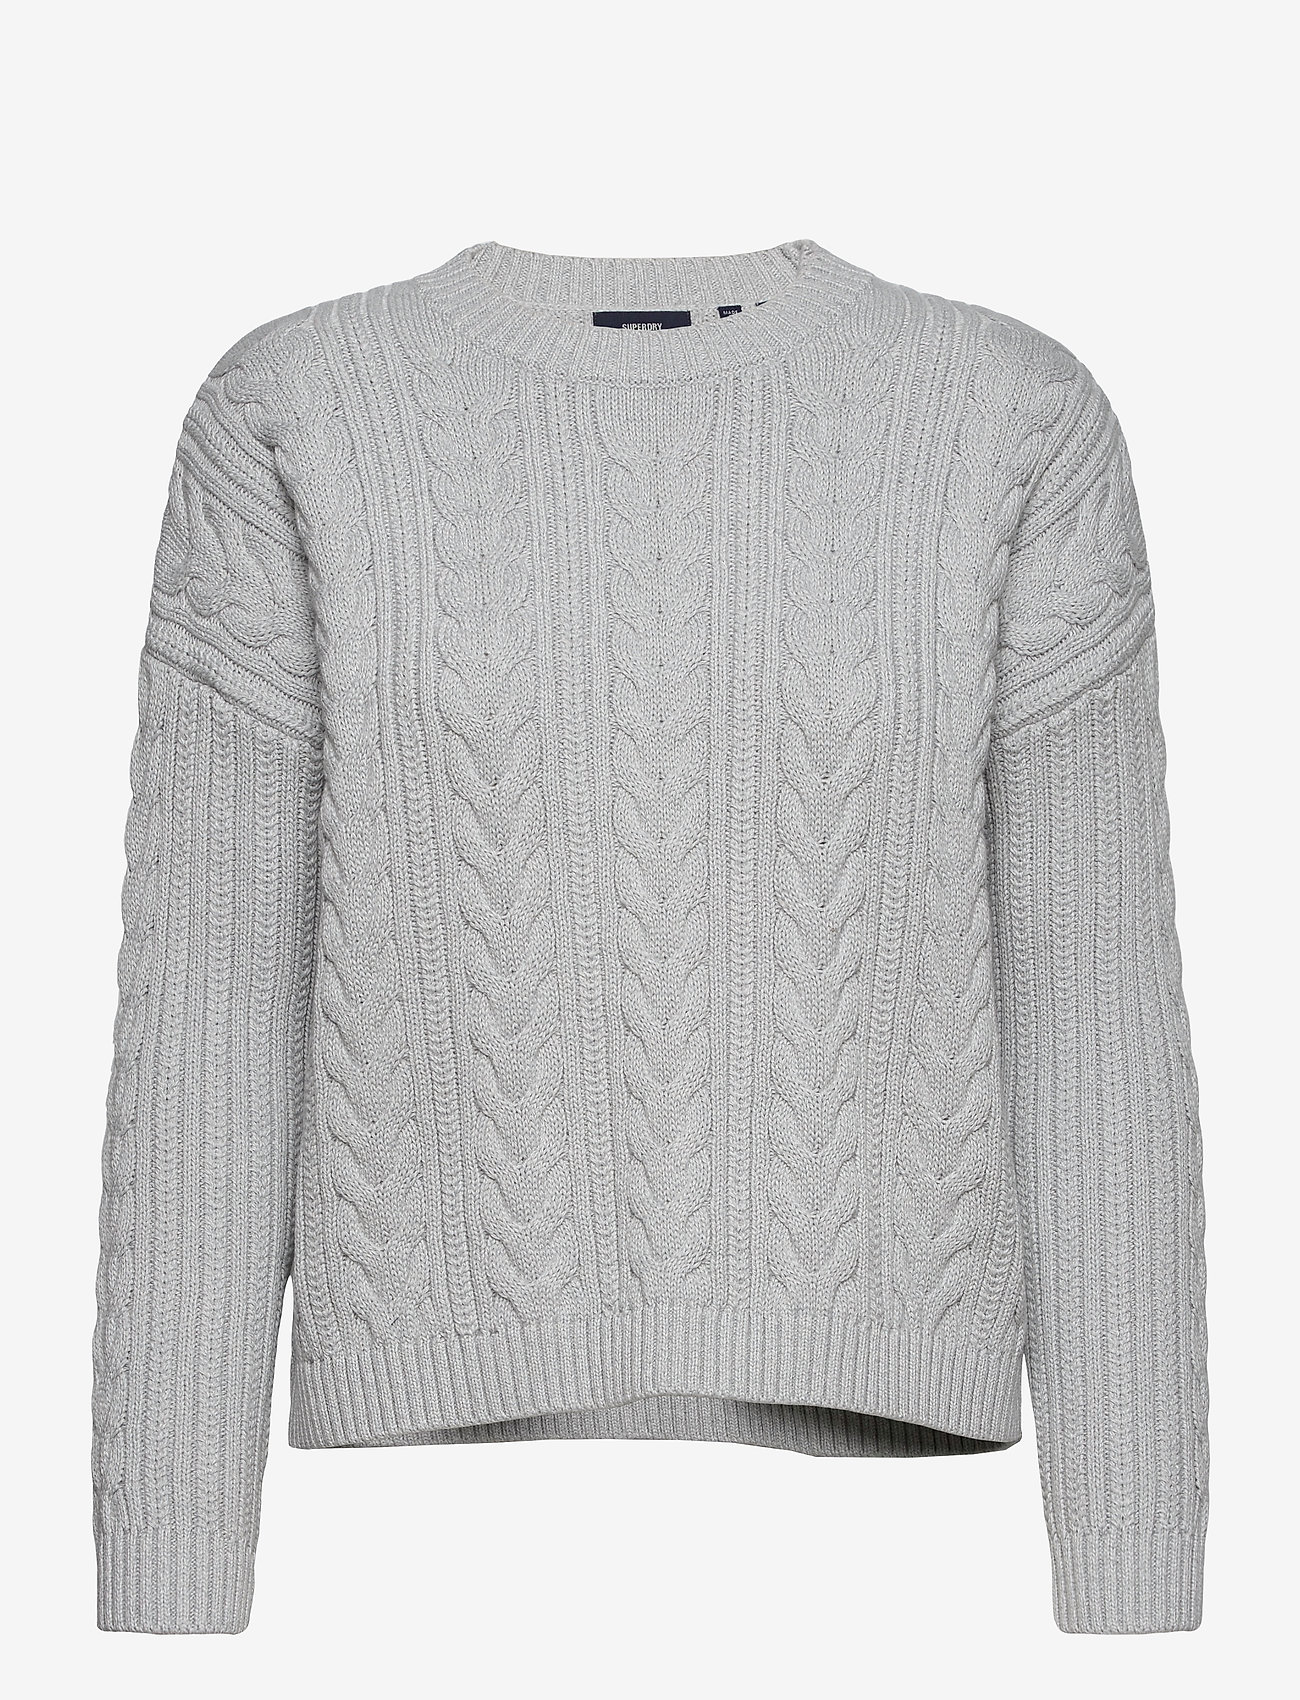 Superdry - DROPPED SHOULDER CABLE CREW - jumpers - light dove grey - 0